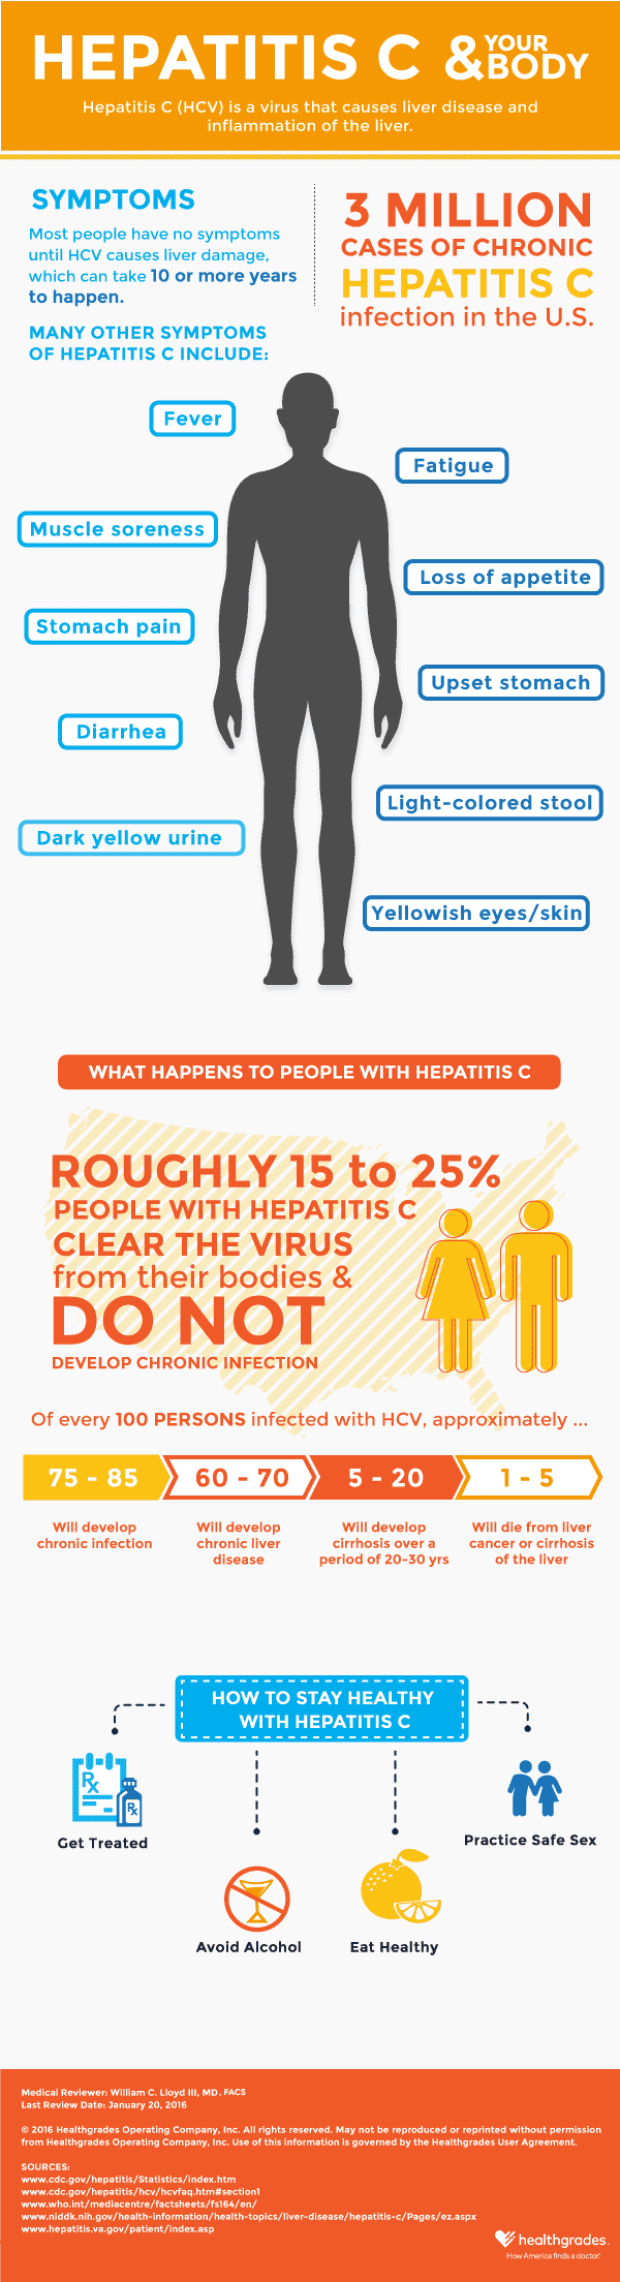 Hepatitis C and Your Body Infographic